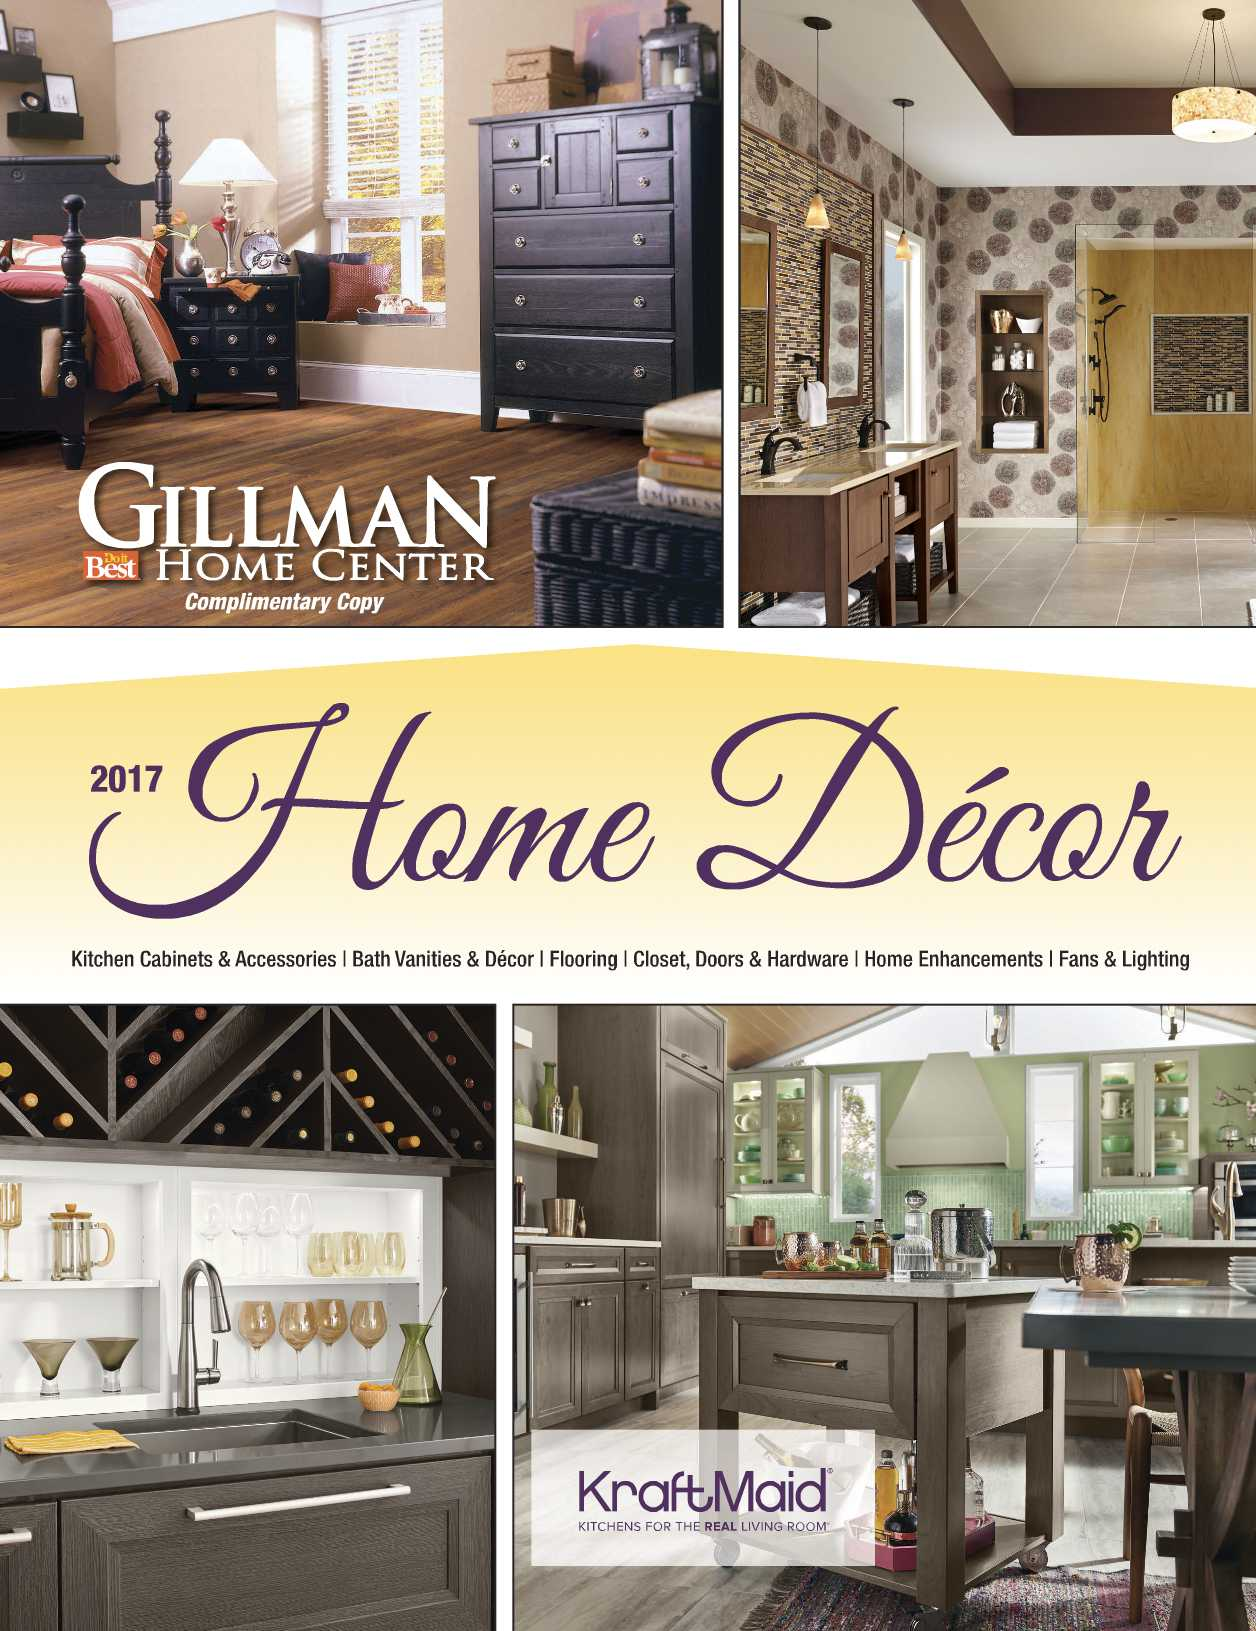 Home Decor Catalog Gillman Home Center